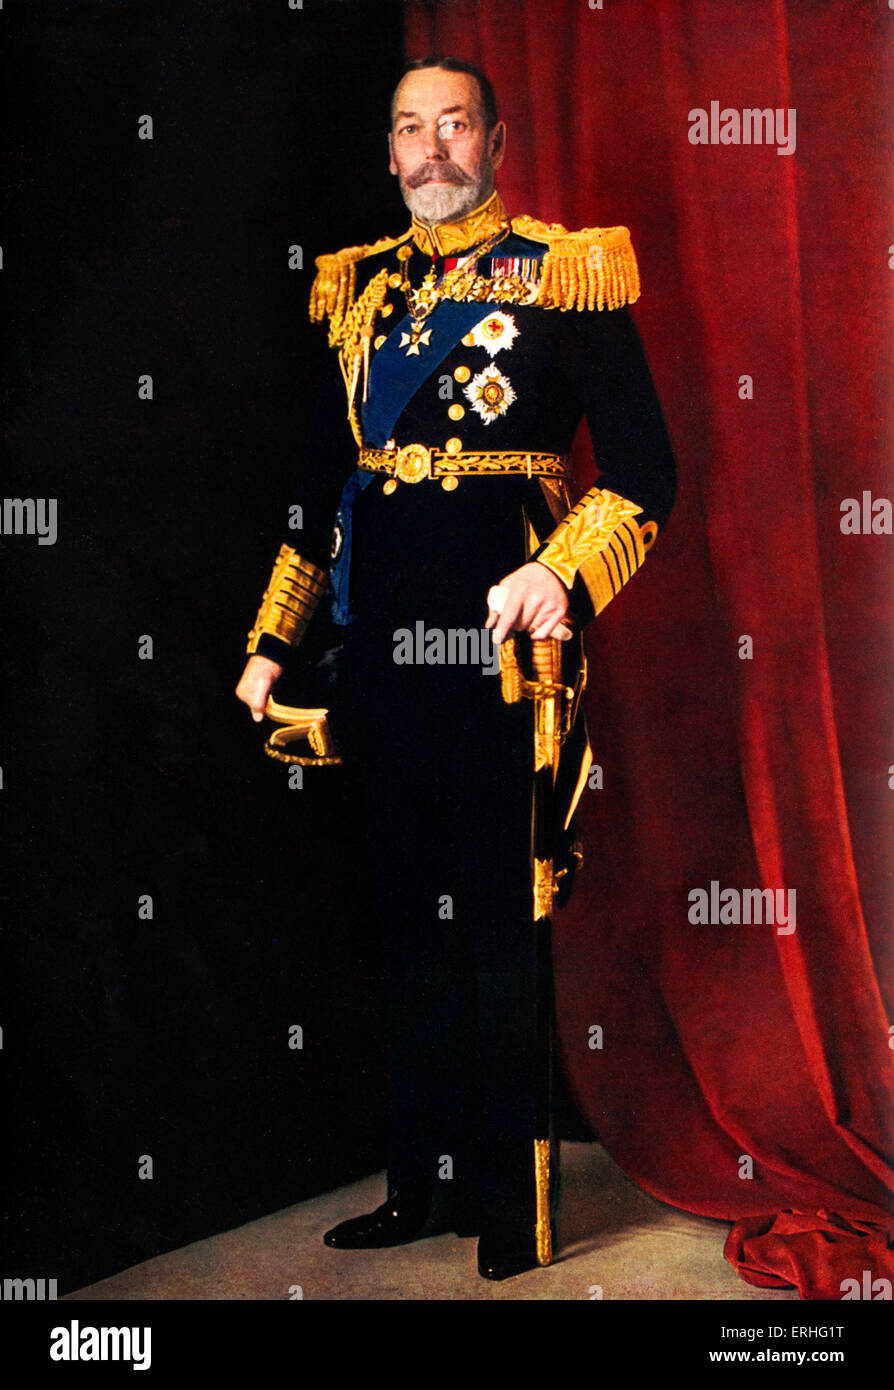 King George V - in full dress uniform with sword in official portrait photograph of 1935.   Colour photograph by - Stock Image